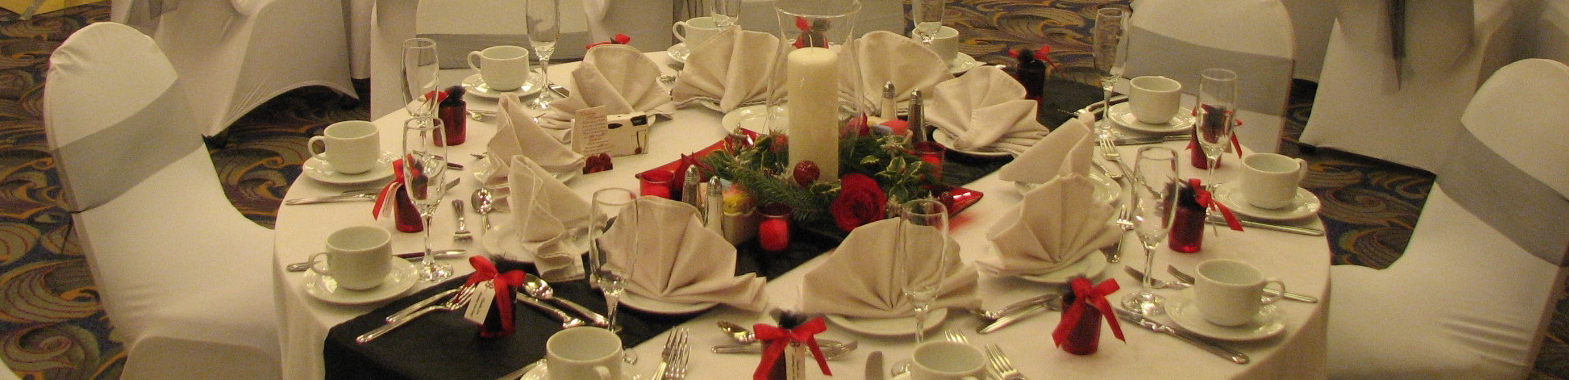 Crowne Plaza Dulles Airport Hotel Catering - Herndon